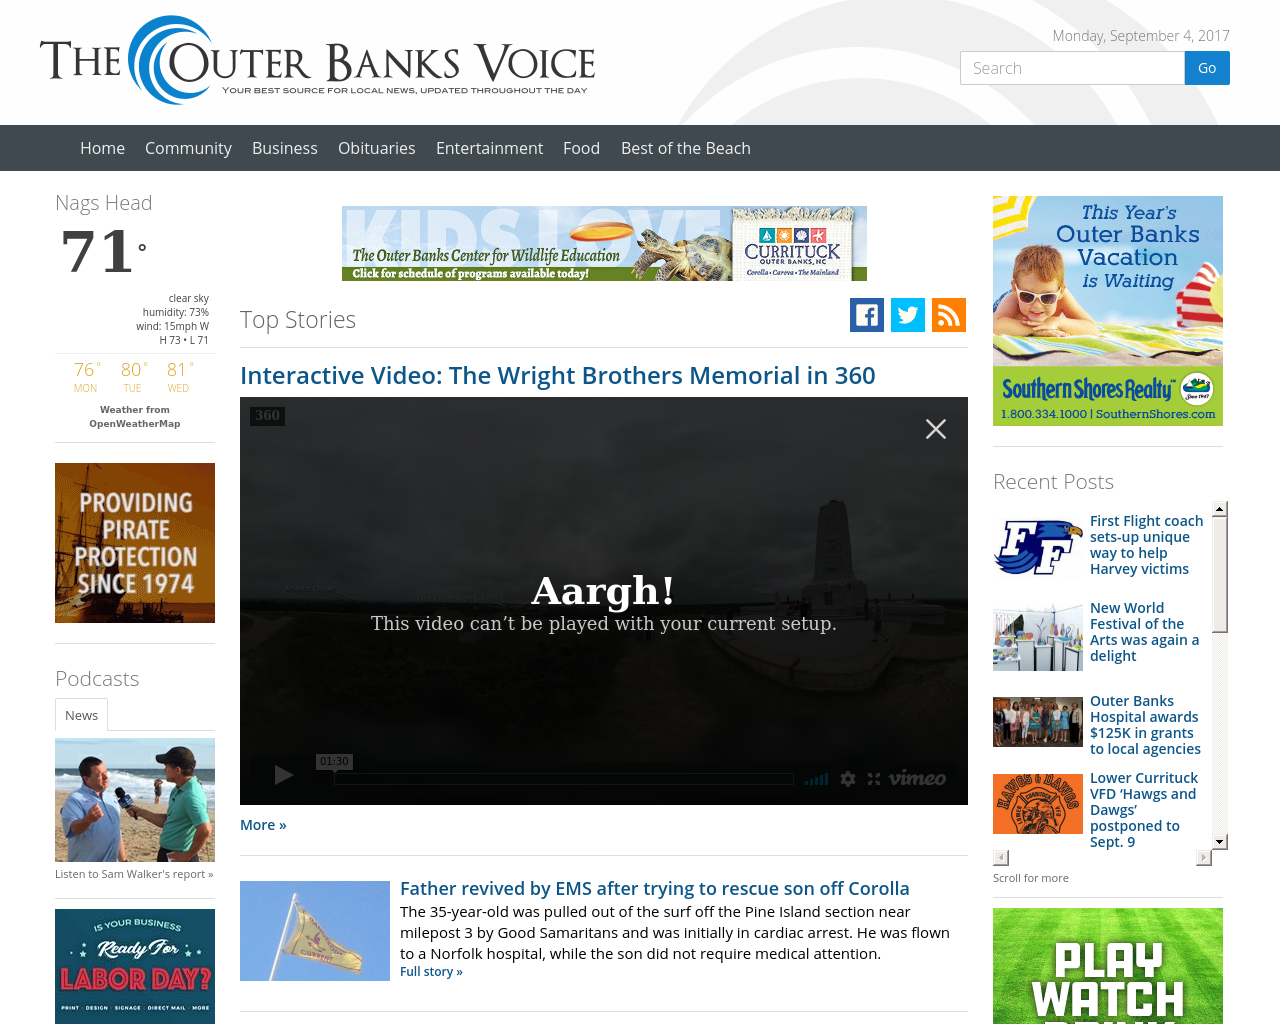 The-Outer-Banks-Voice-Advertising-Reviews-Pricing